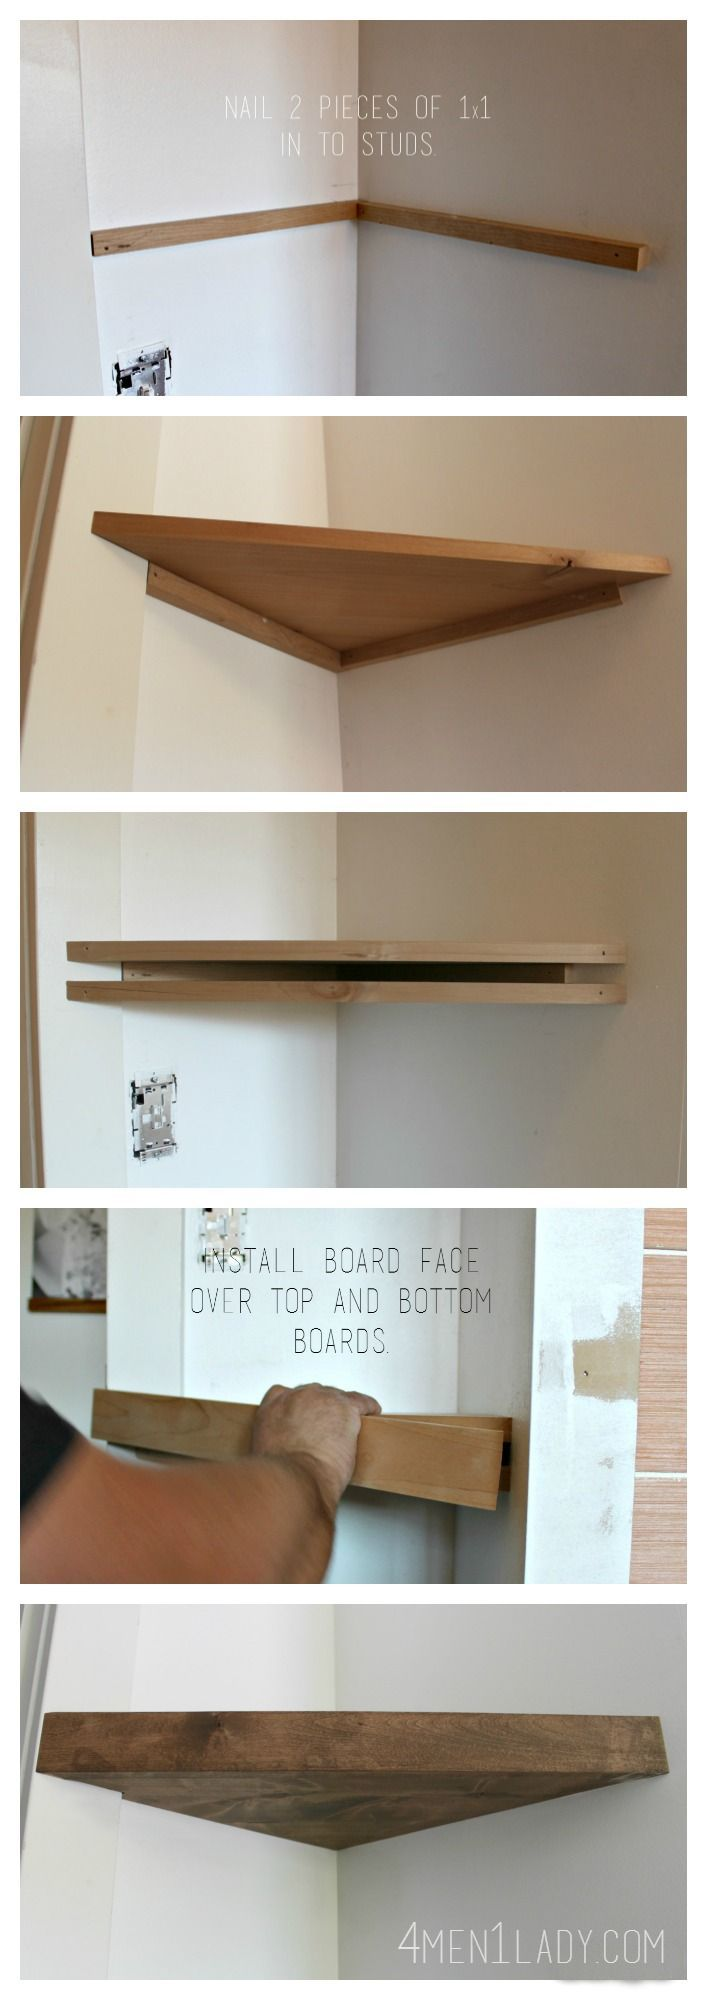 How to make corner floating shelves. 4men1lady.com